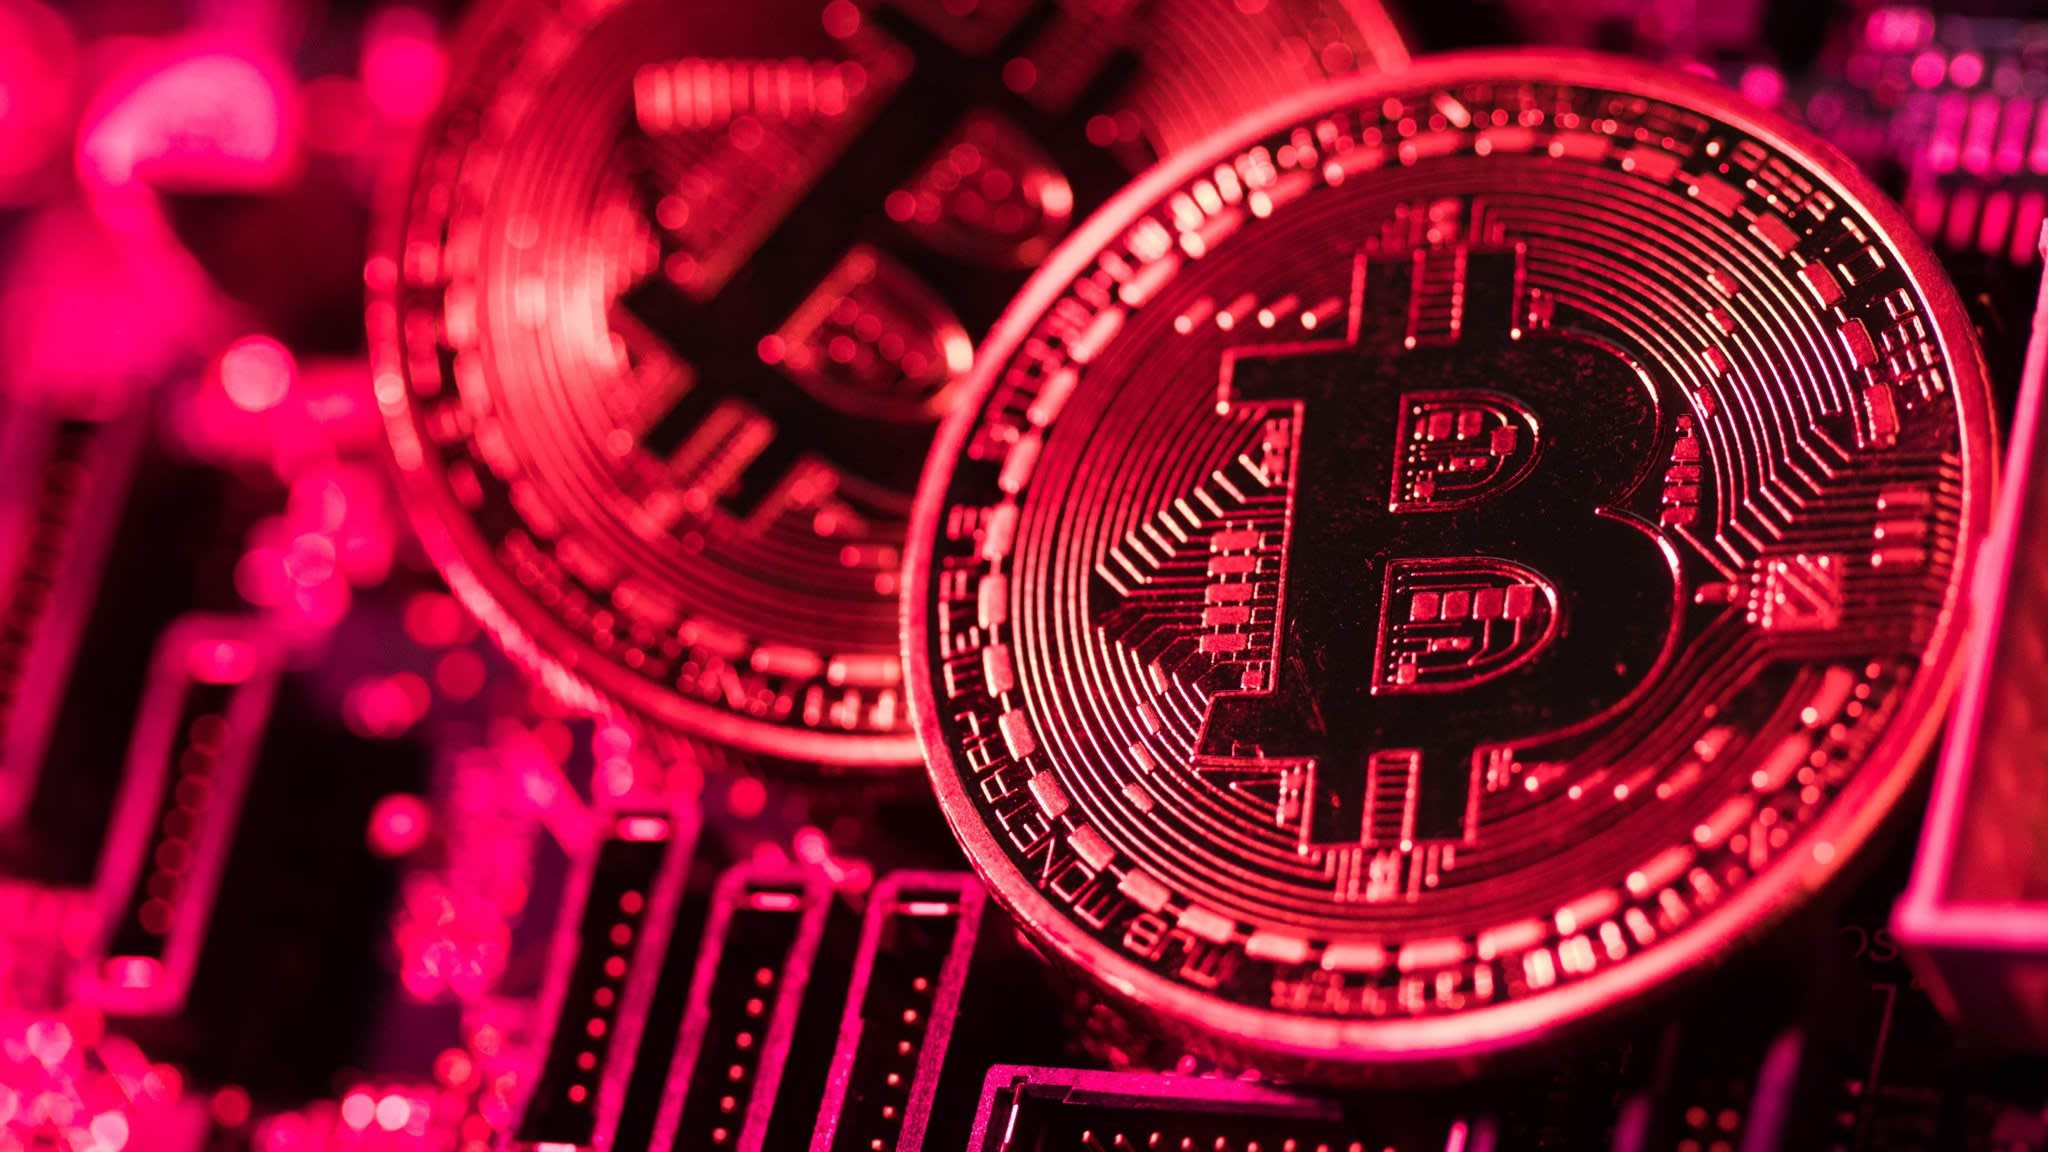 What next for cryptocurrencies after bubble bursts? | Financial Times